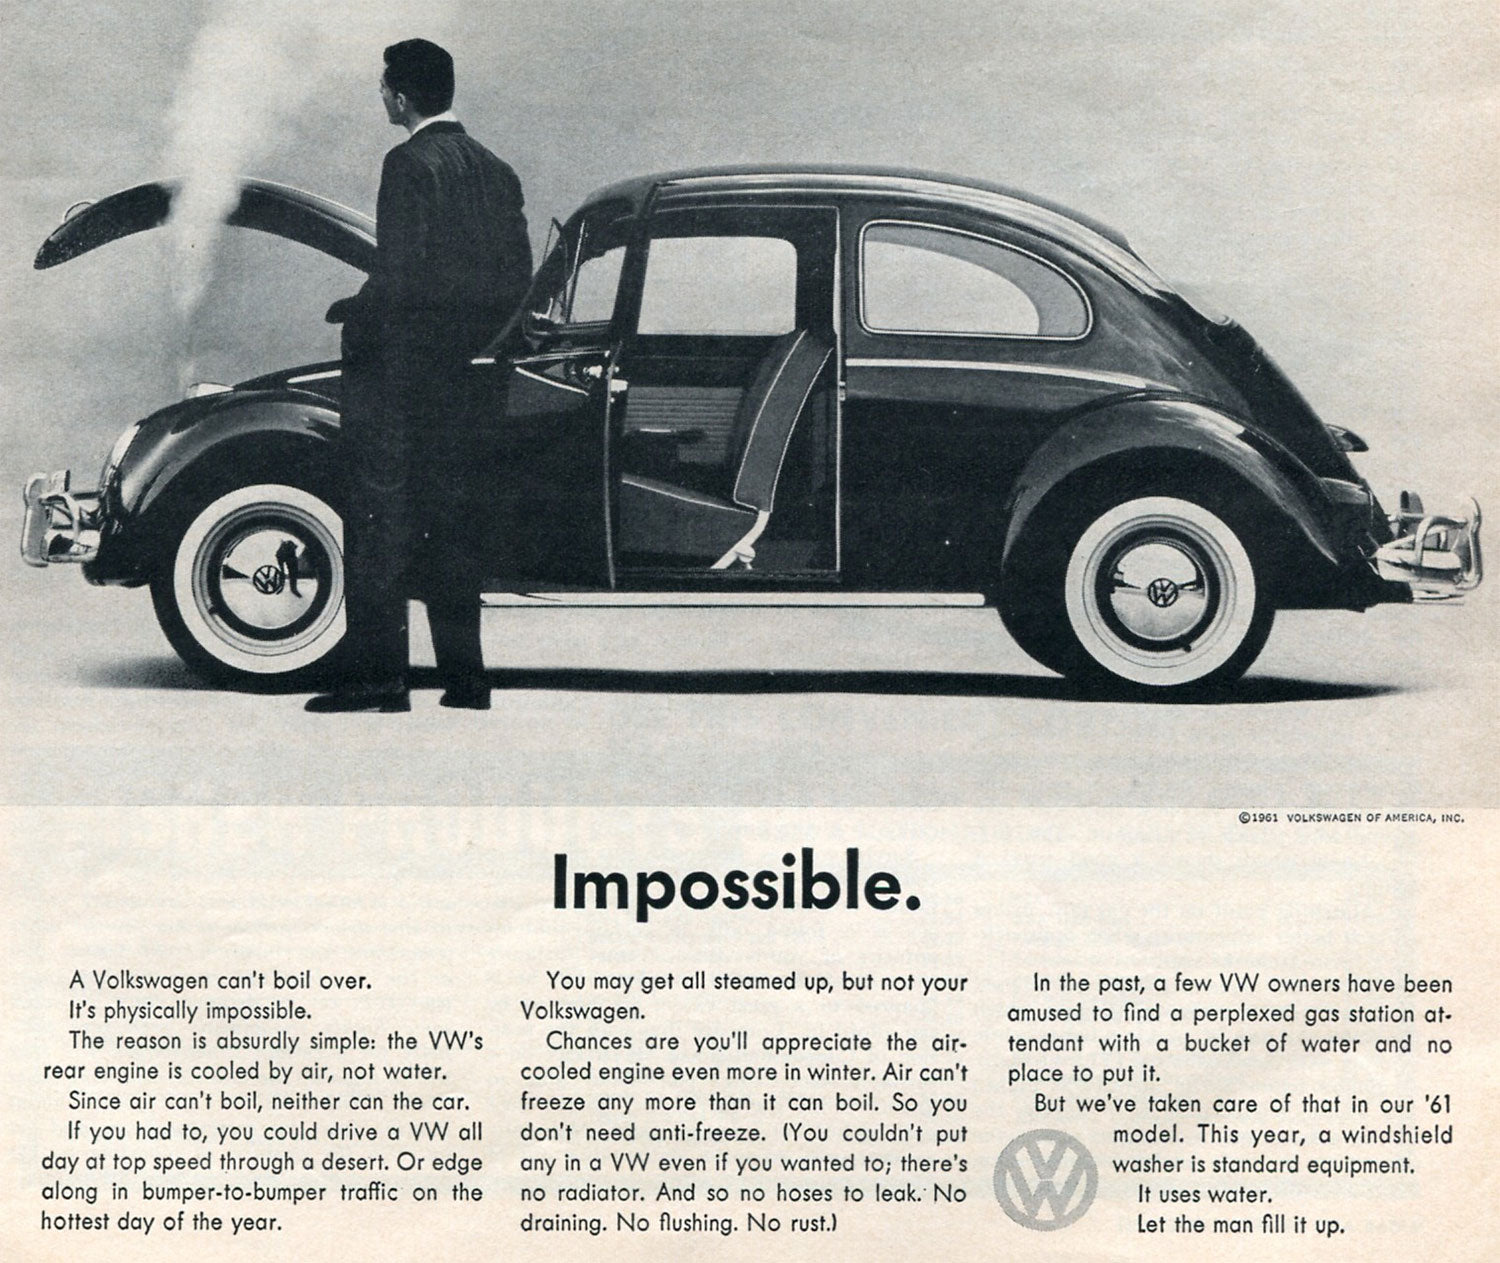 Volkswagen's use of Futura in their 1960s ads for the Beetle